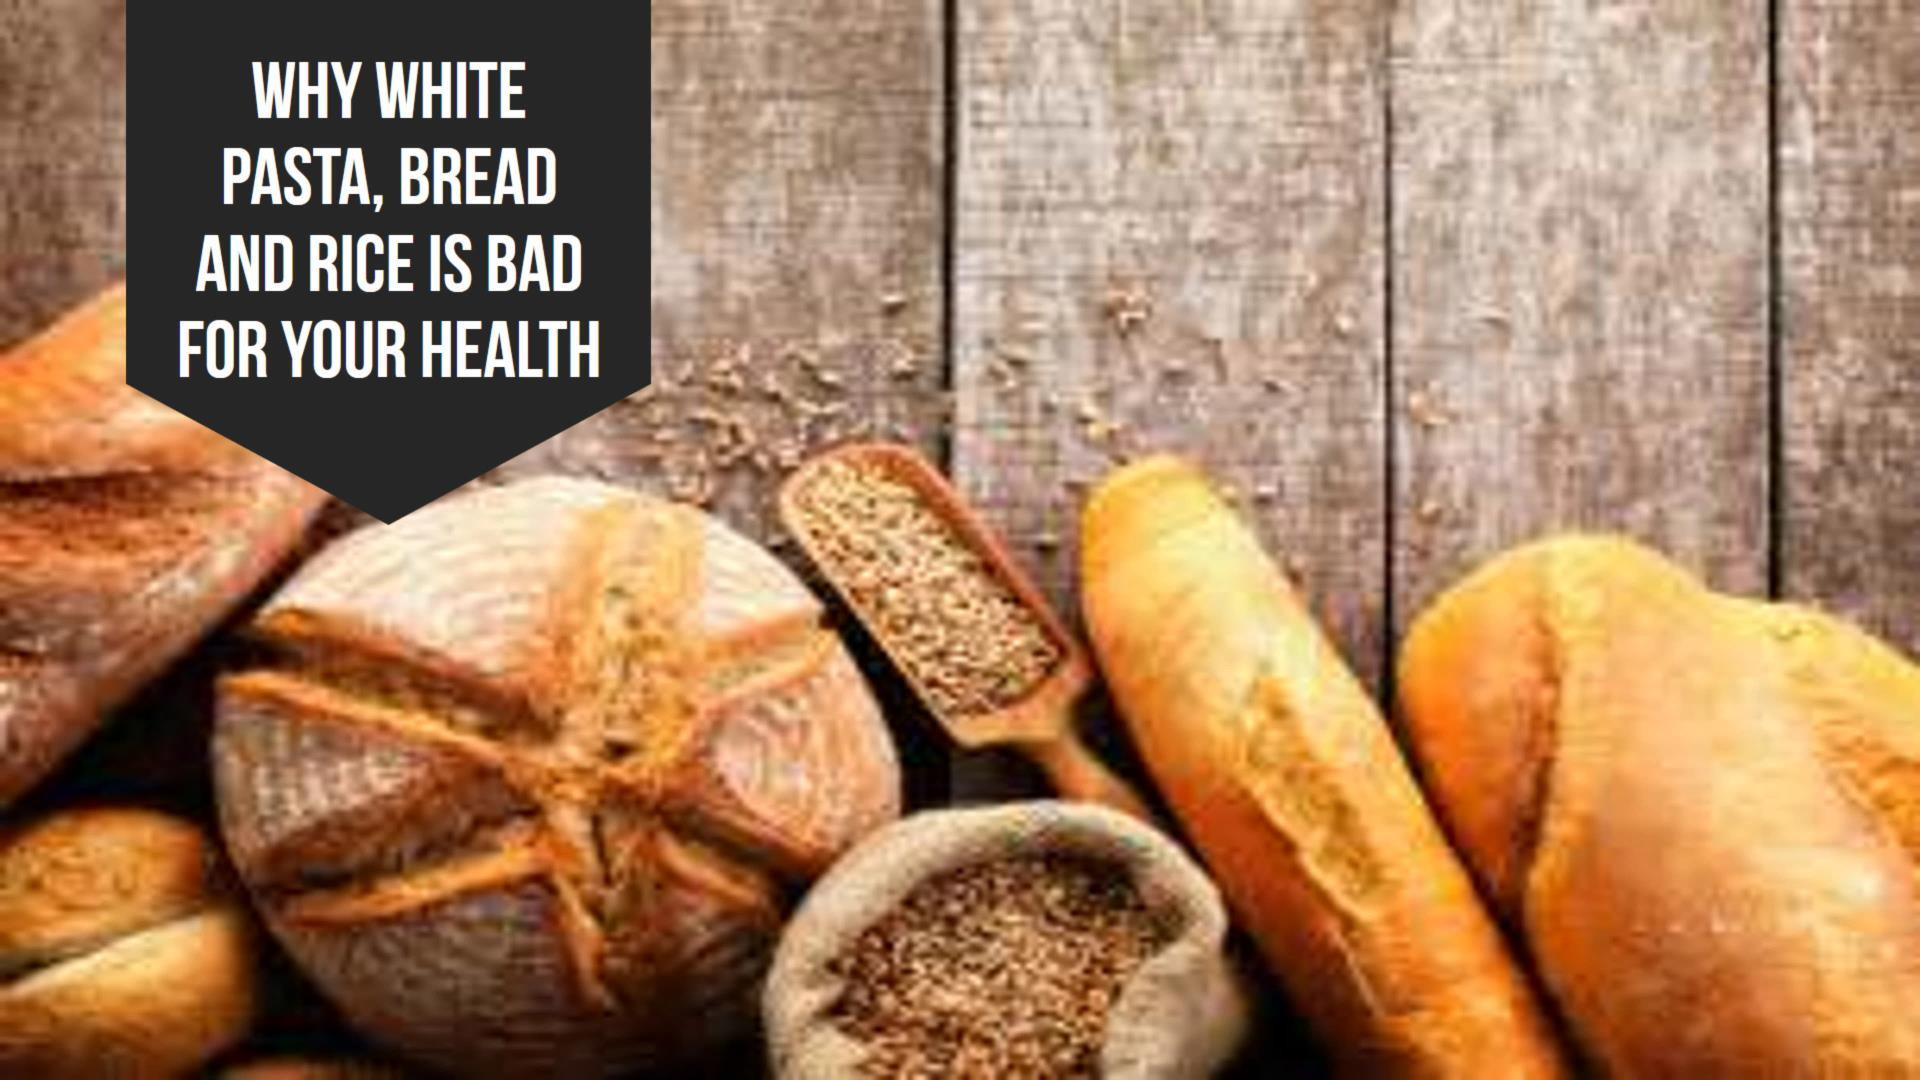 Is White Bread Bad For You  Why White Pasta Bread And Rice Is Bad For Your Health